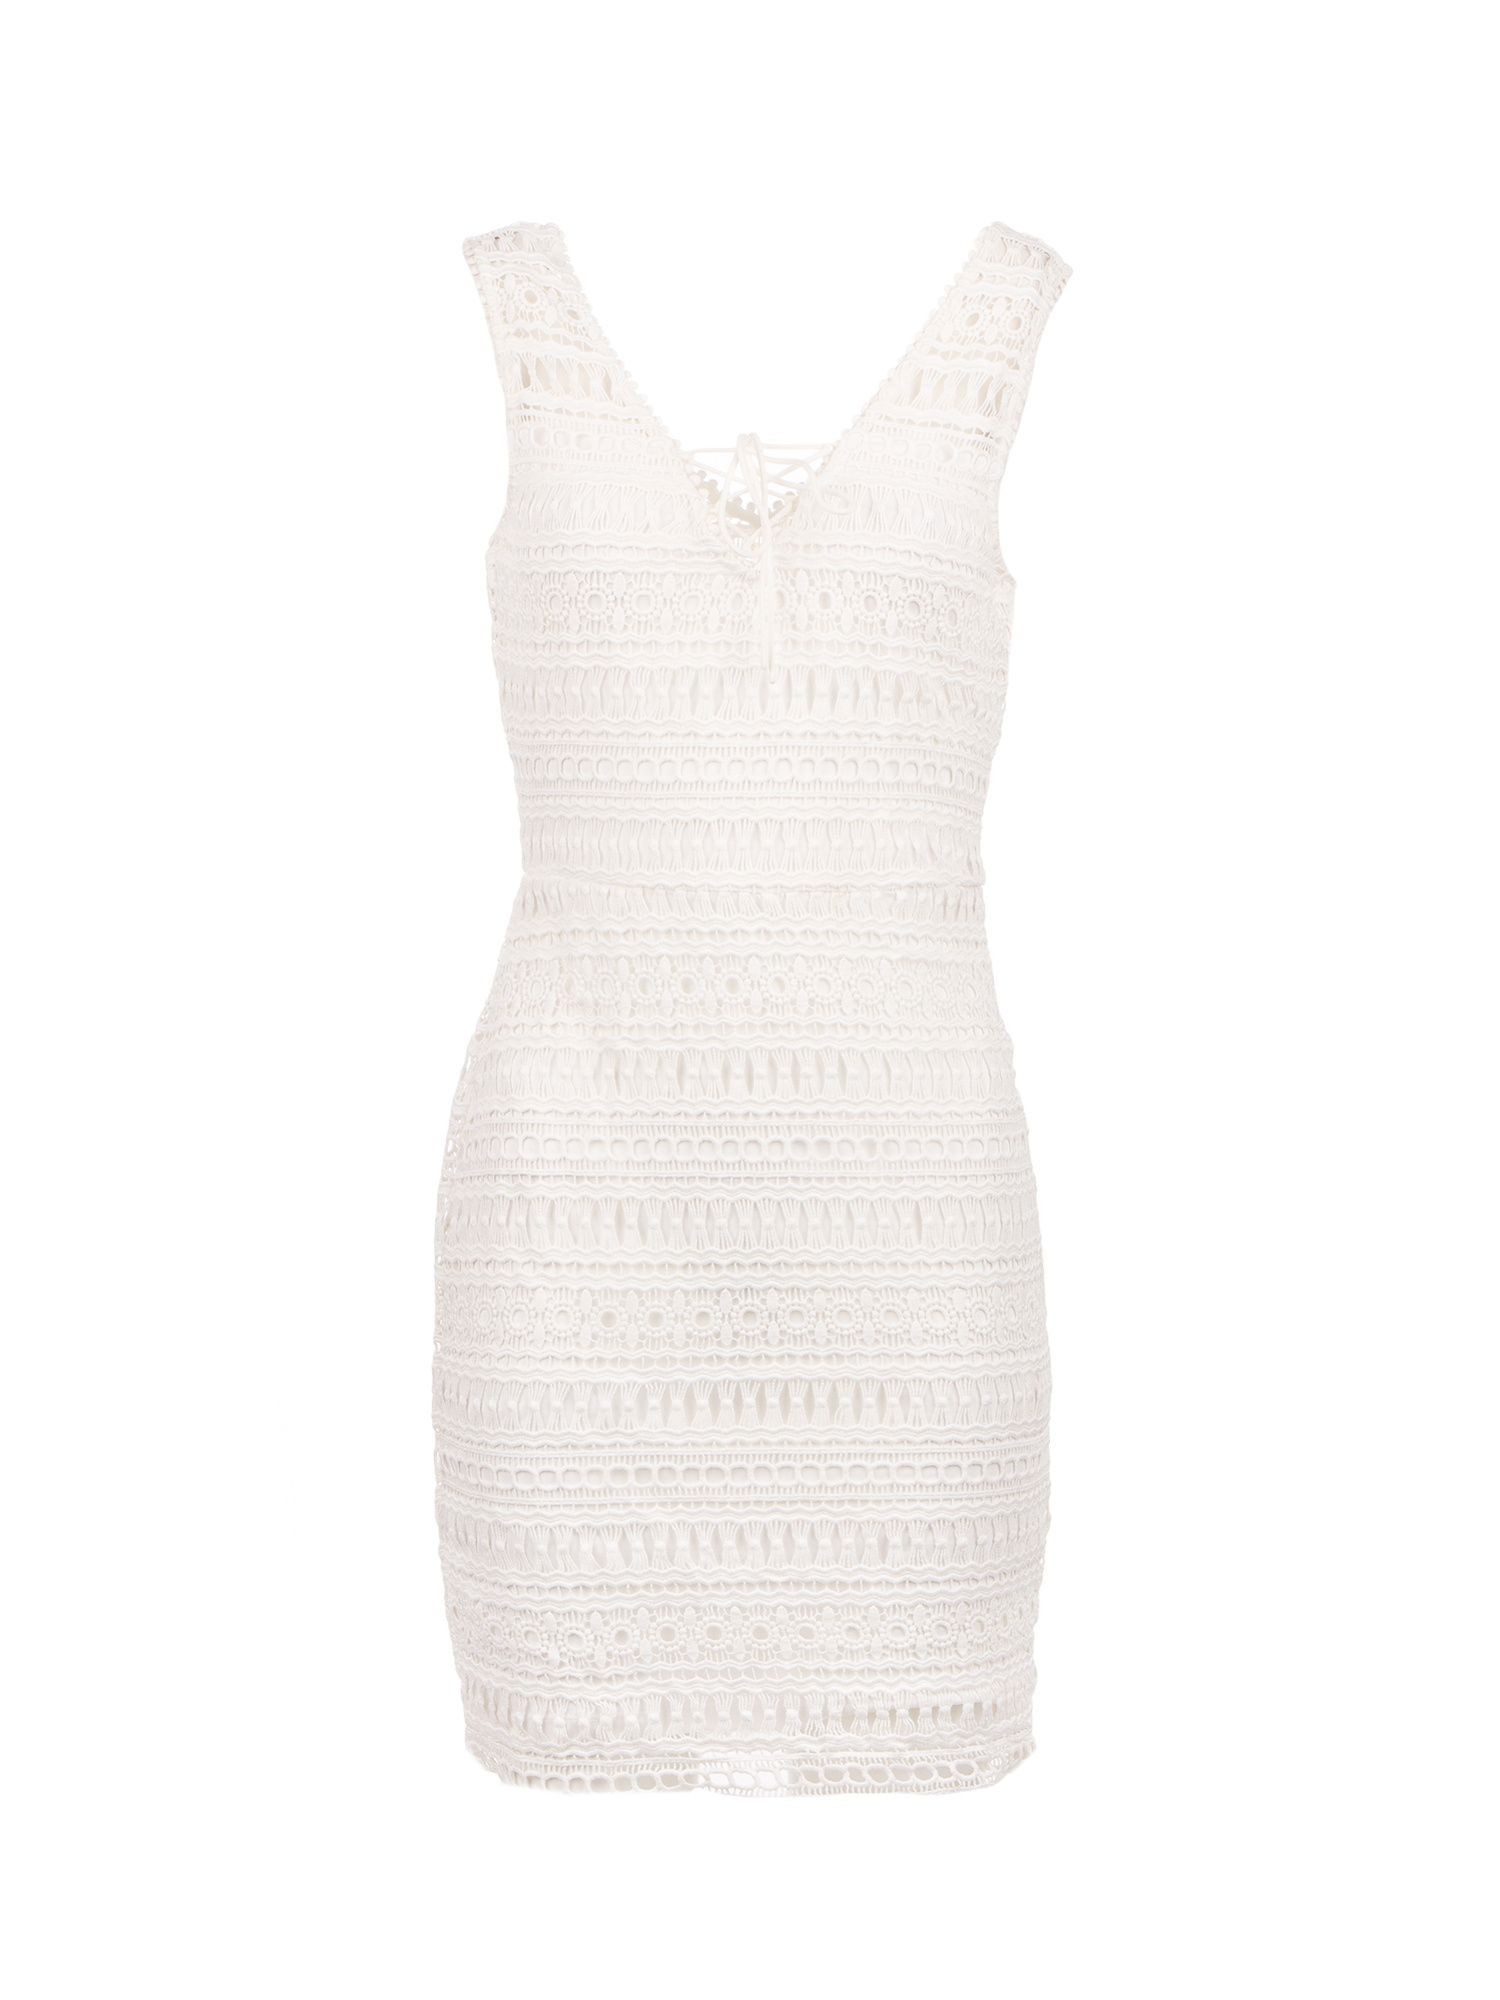 Morgan Lace Up Crochet Knit Dress, Off White